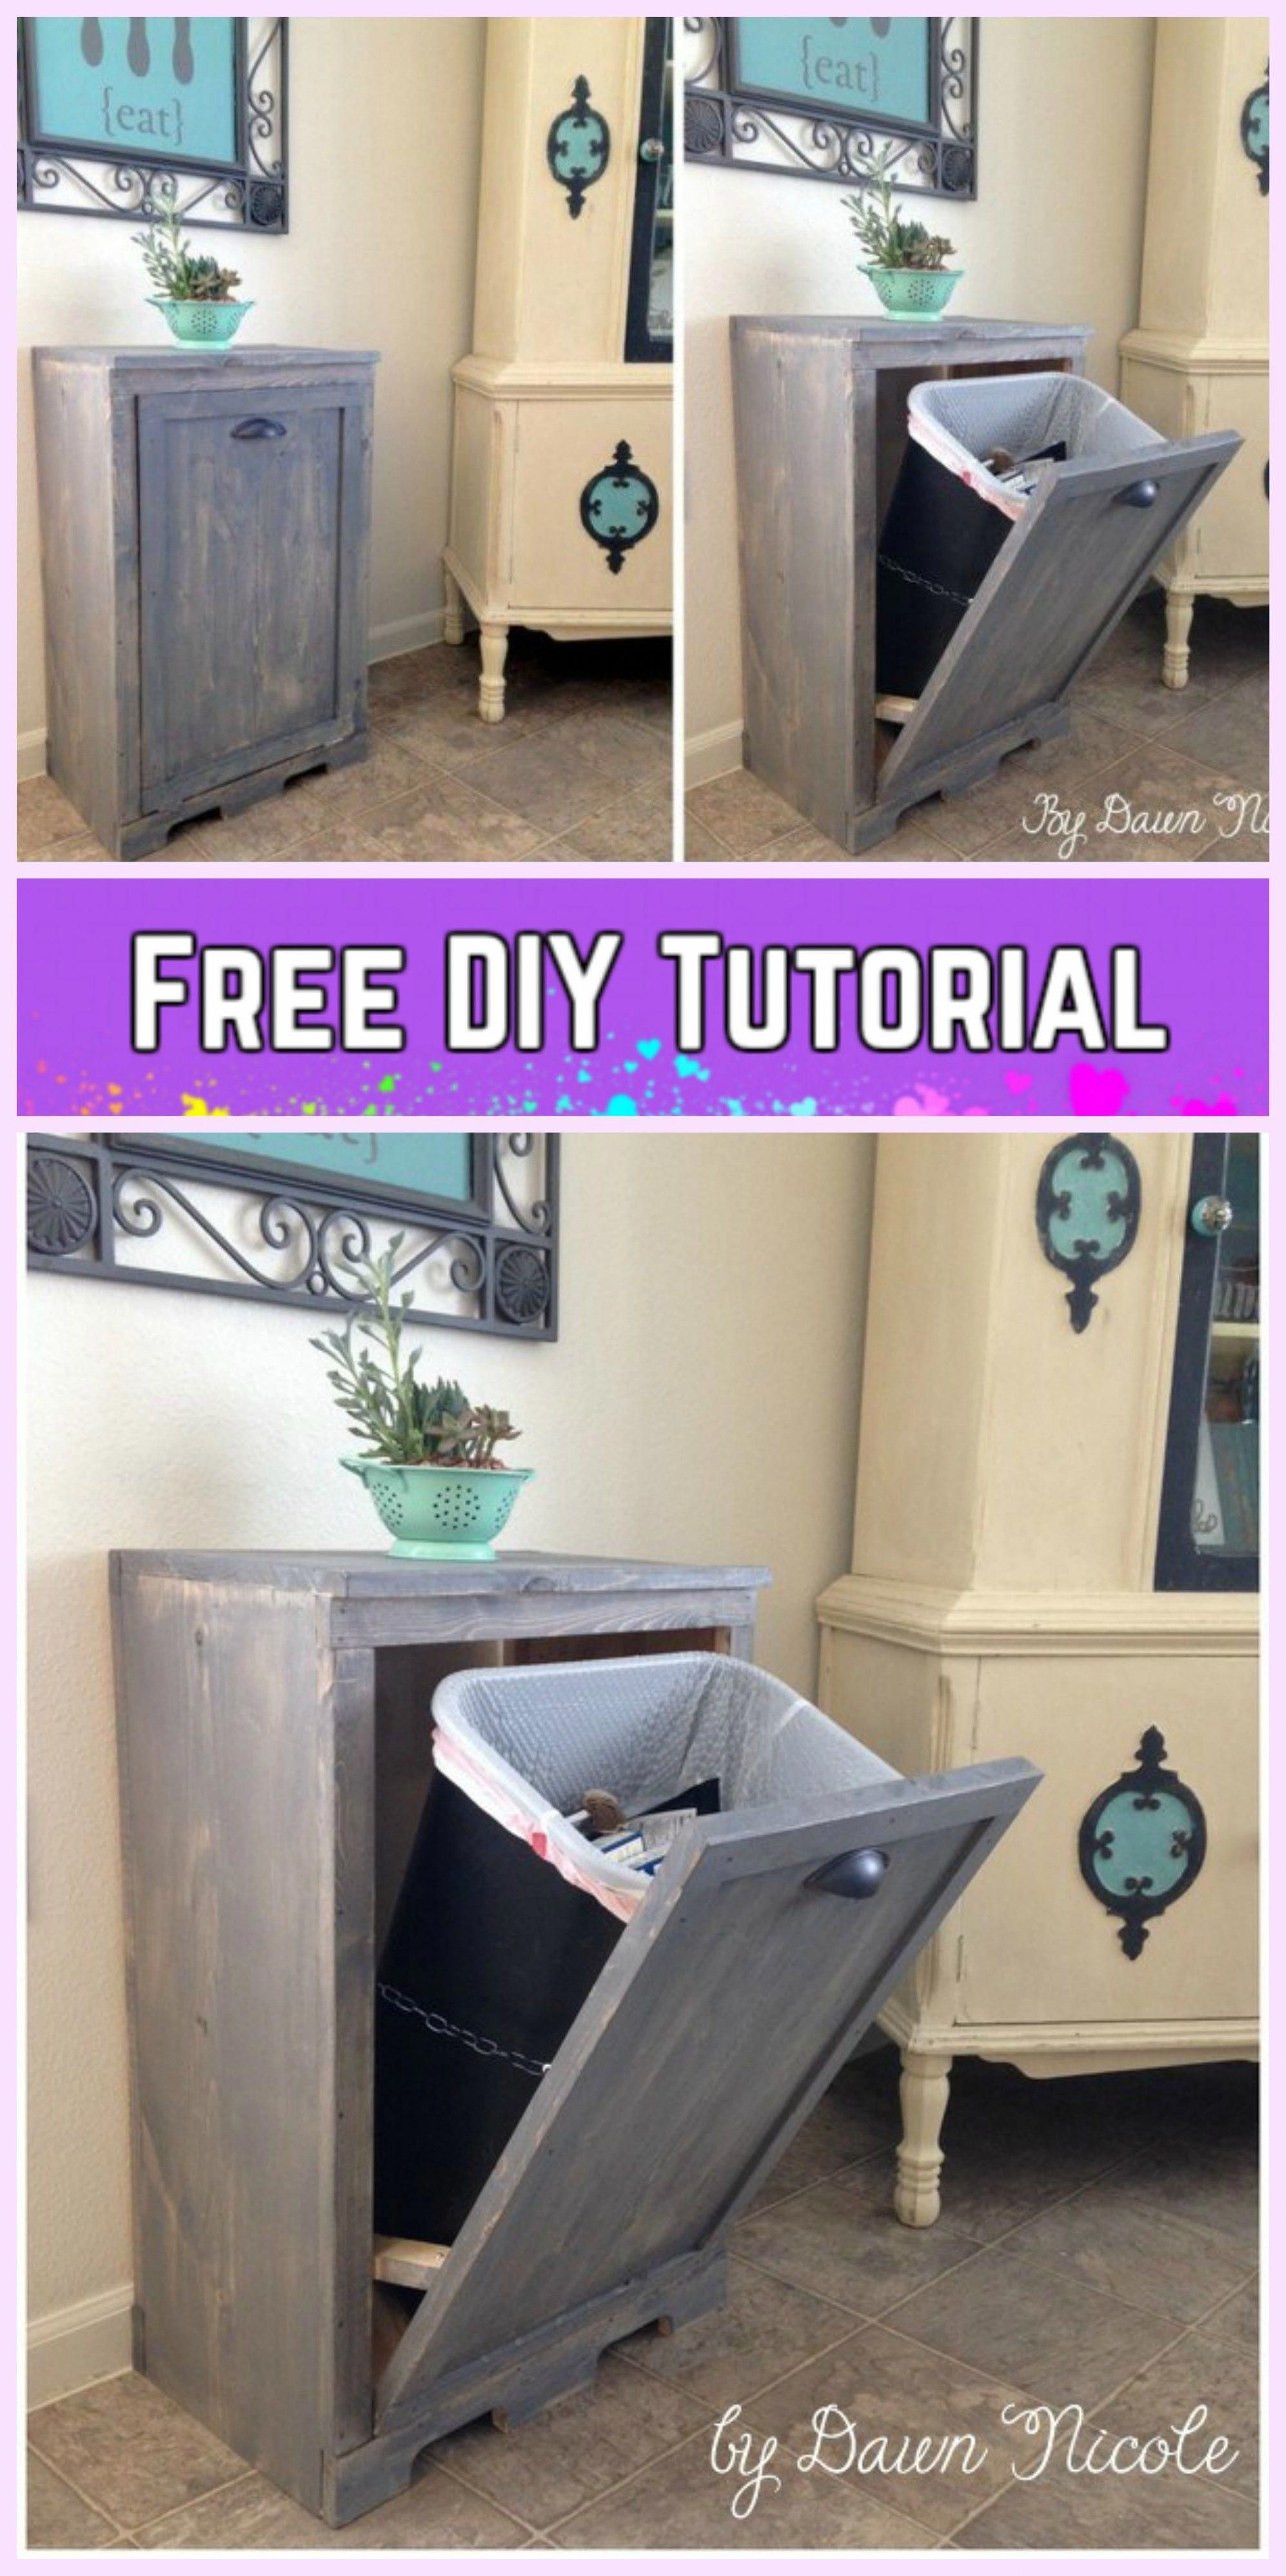 Diy tilt out trash can cabinet tutorials leftoverwoodprojects